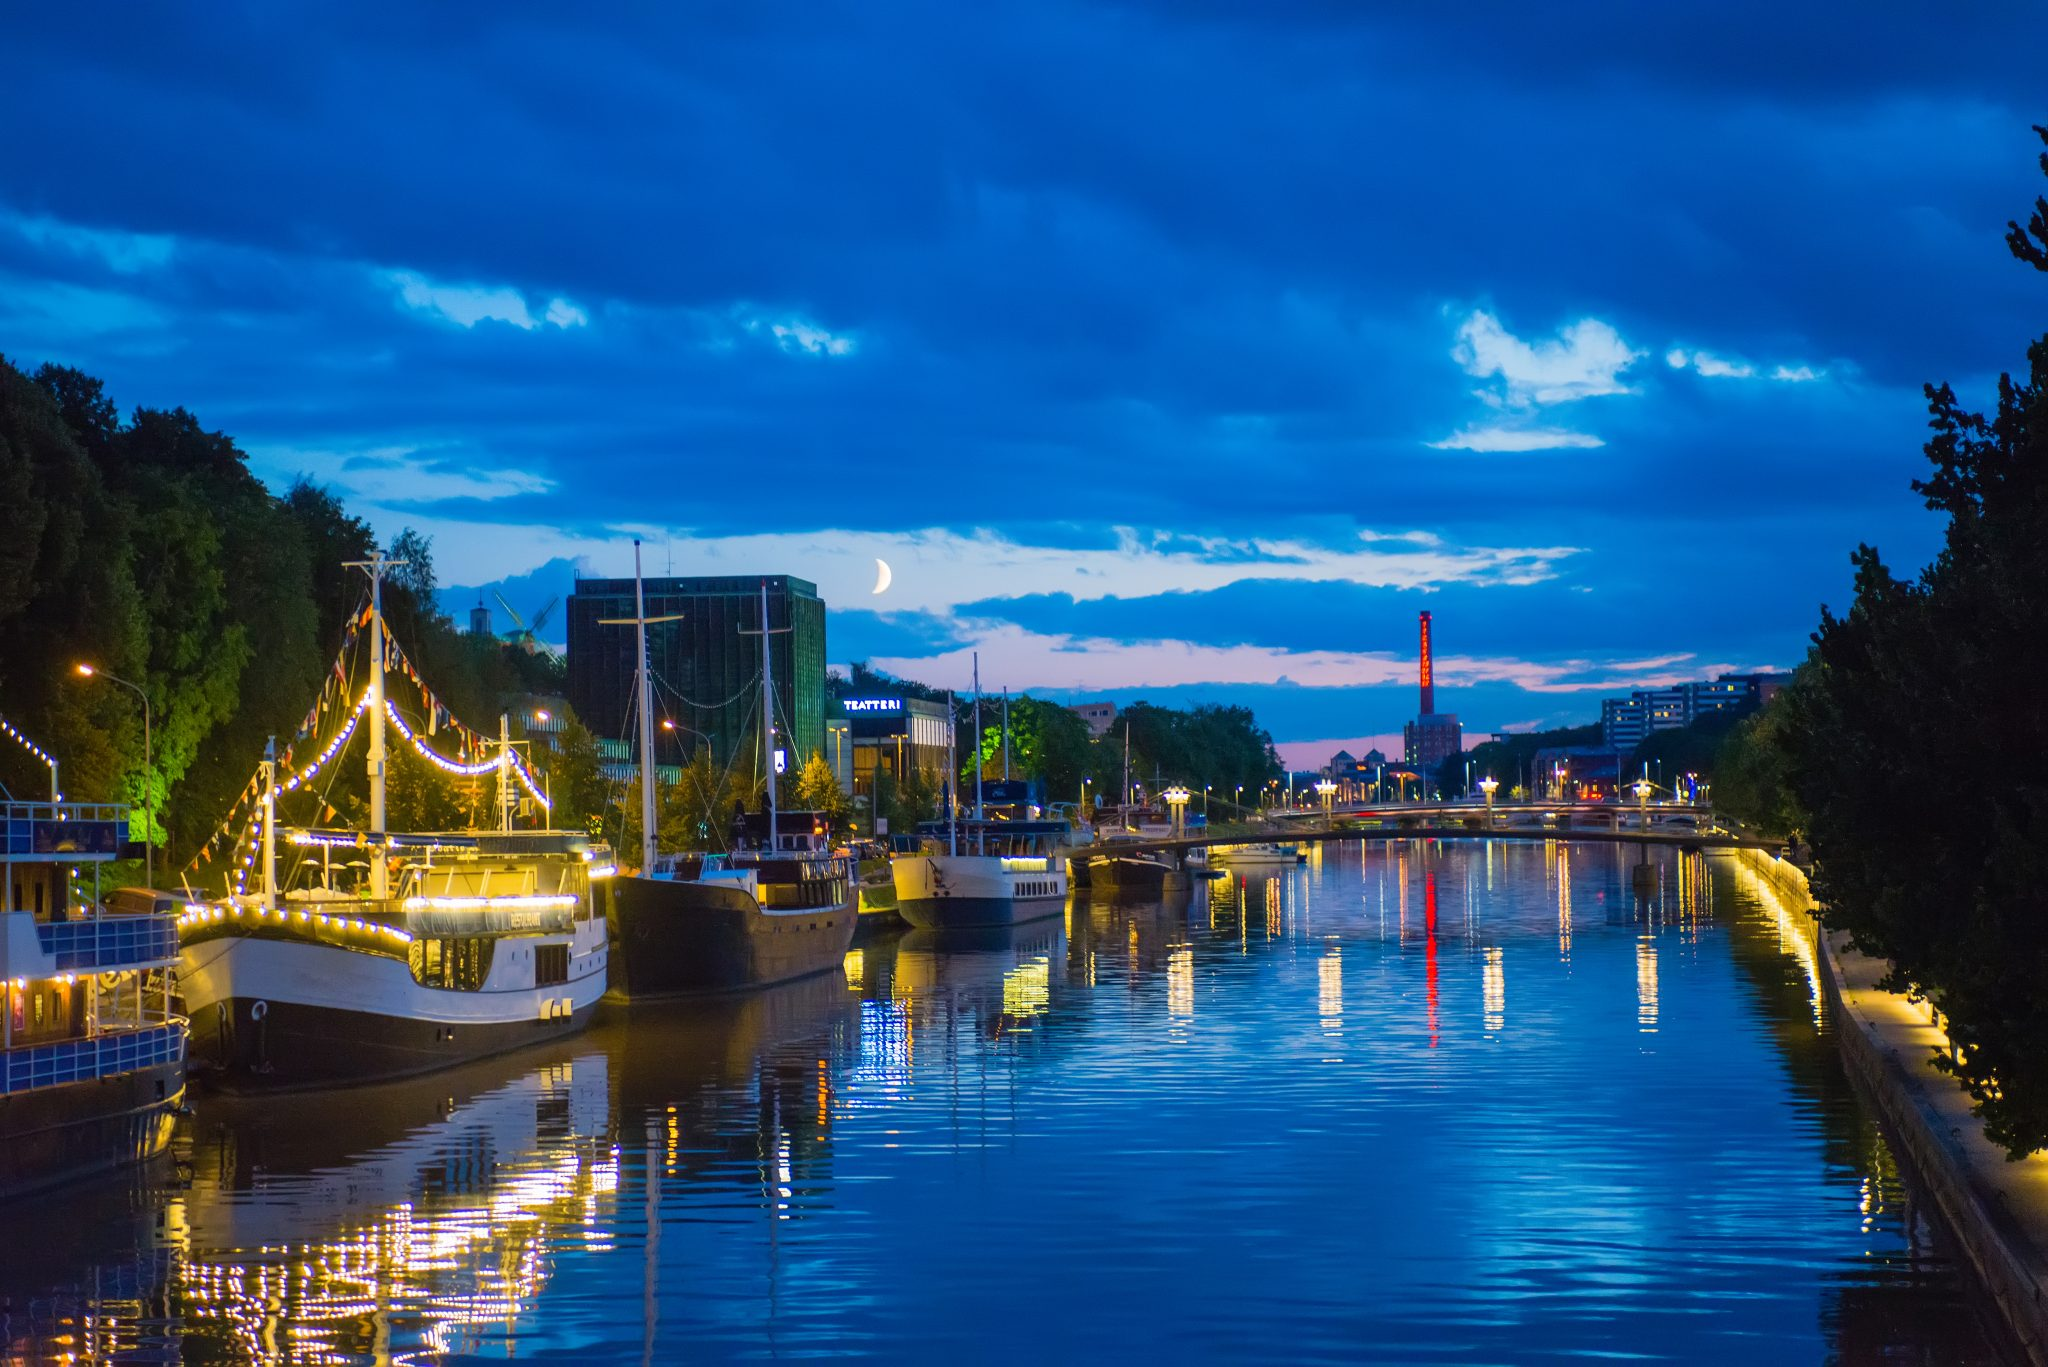 Ships are moored on the River Aura in Turku on a darkening summer night.